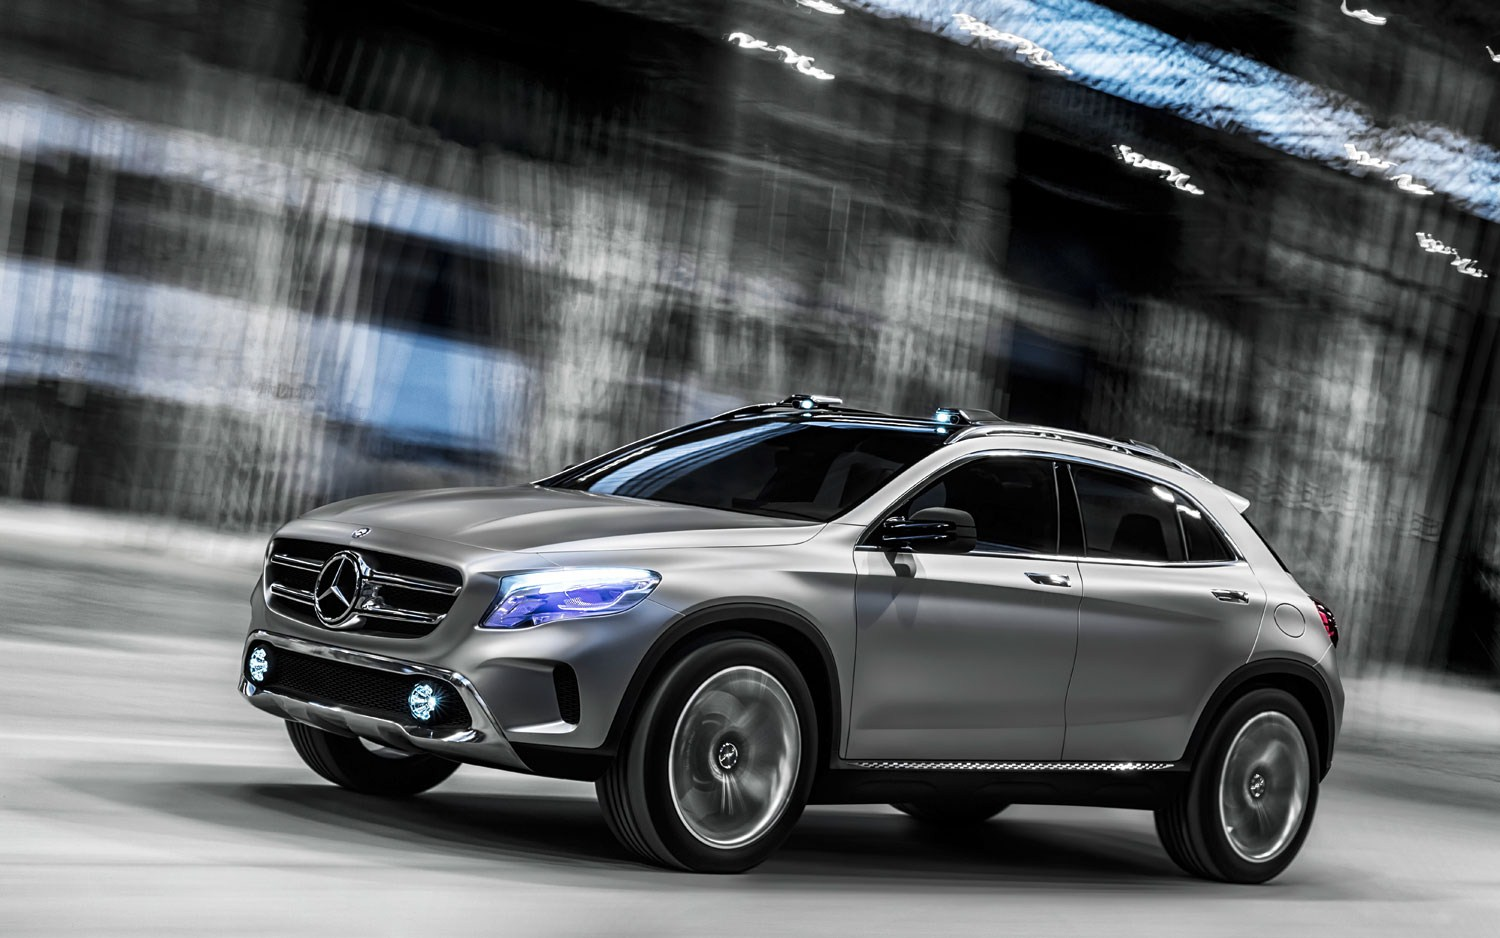 2015 mercedes benz gla class spy shots for Mercedes benz 2015 gla